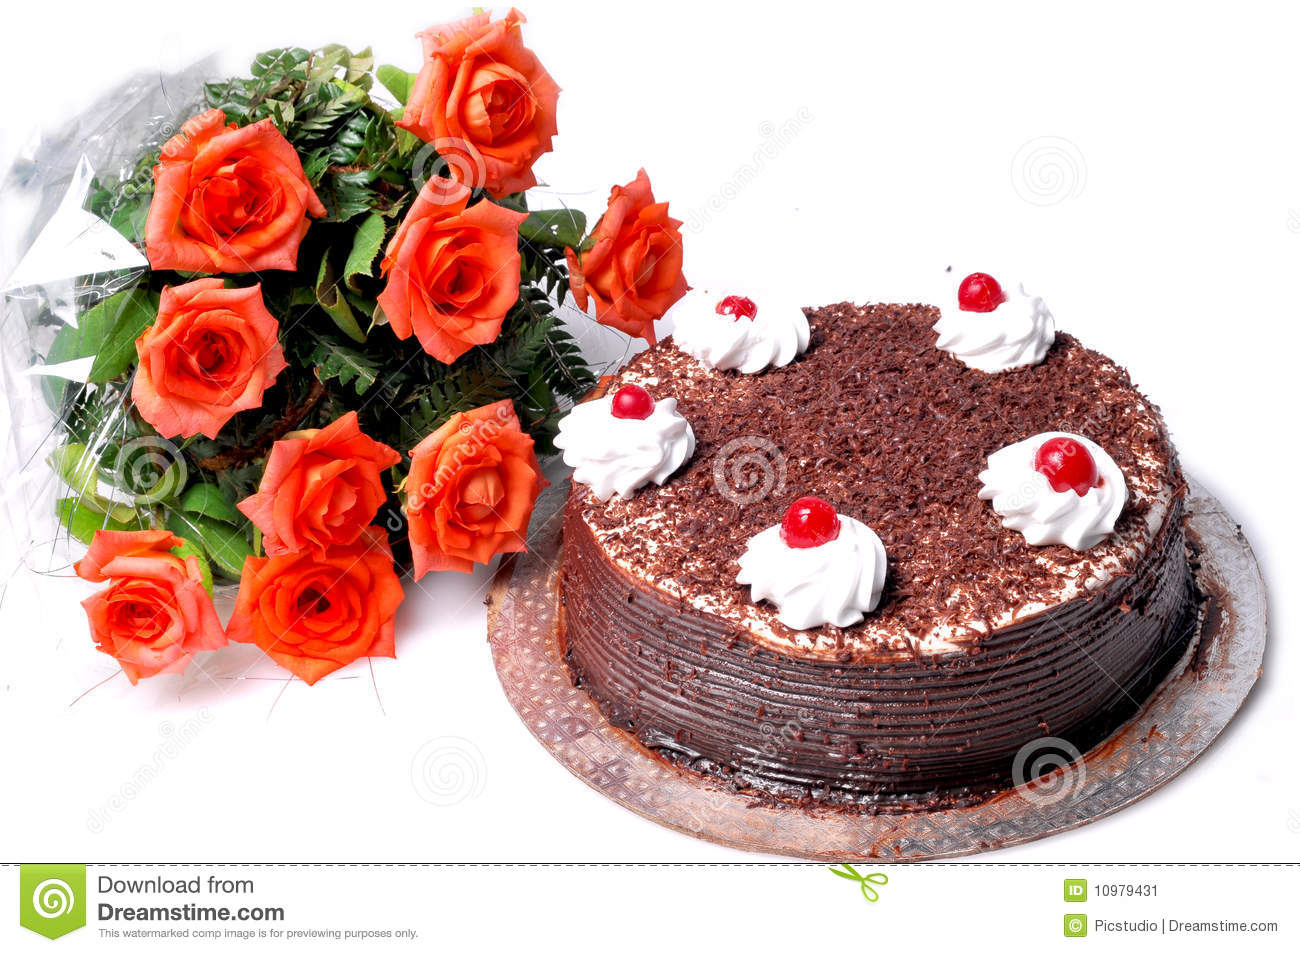 Birthday cake and flowers stock image image of chocolate 10979431 download birthday cake and flowers stock image image of chocolate 10979431 izmirmasajfo